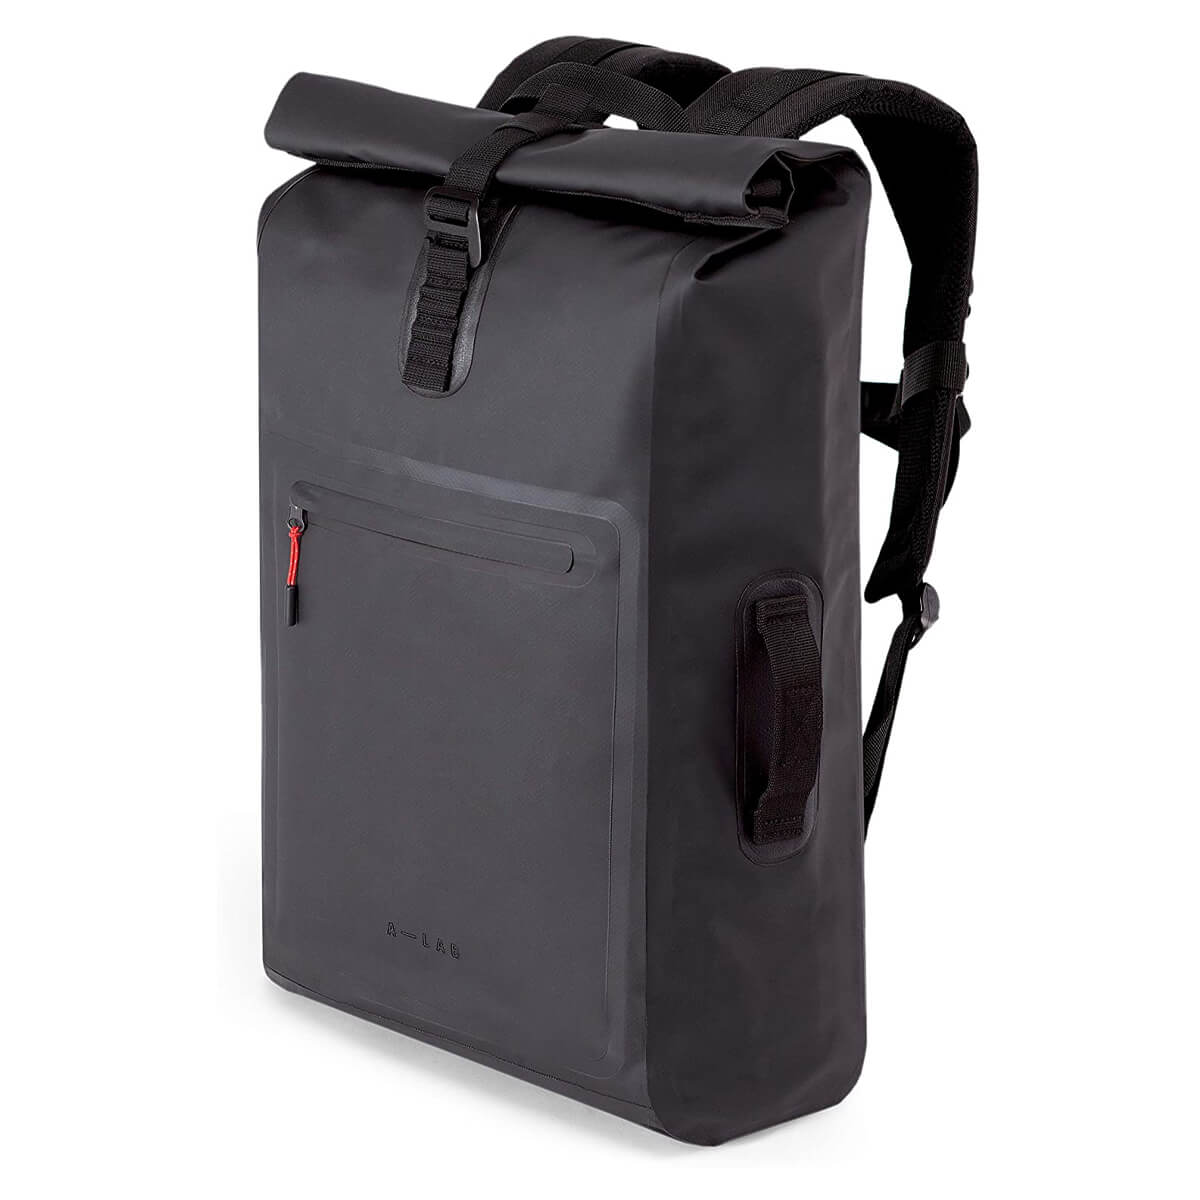 A-LAB Model D Messenger Backpack